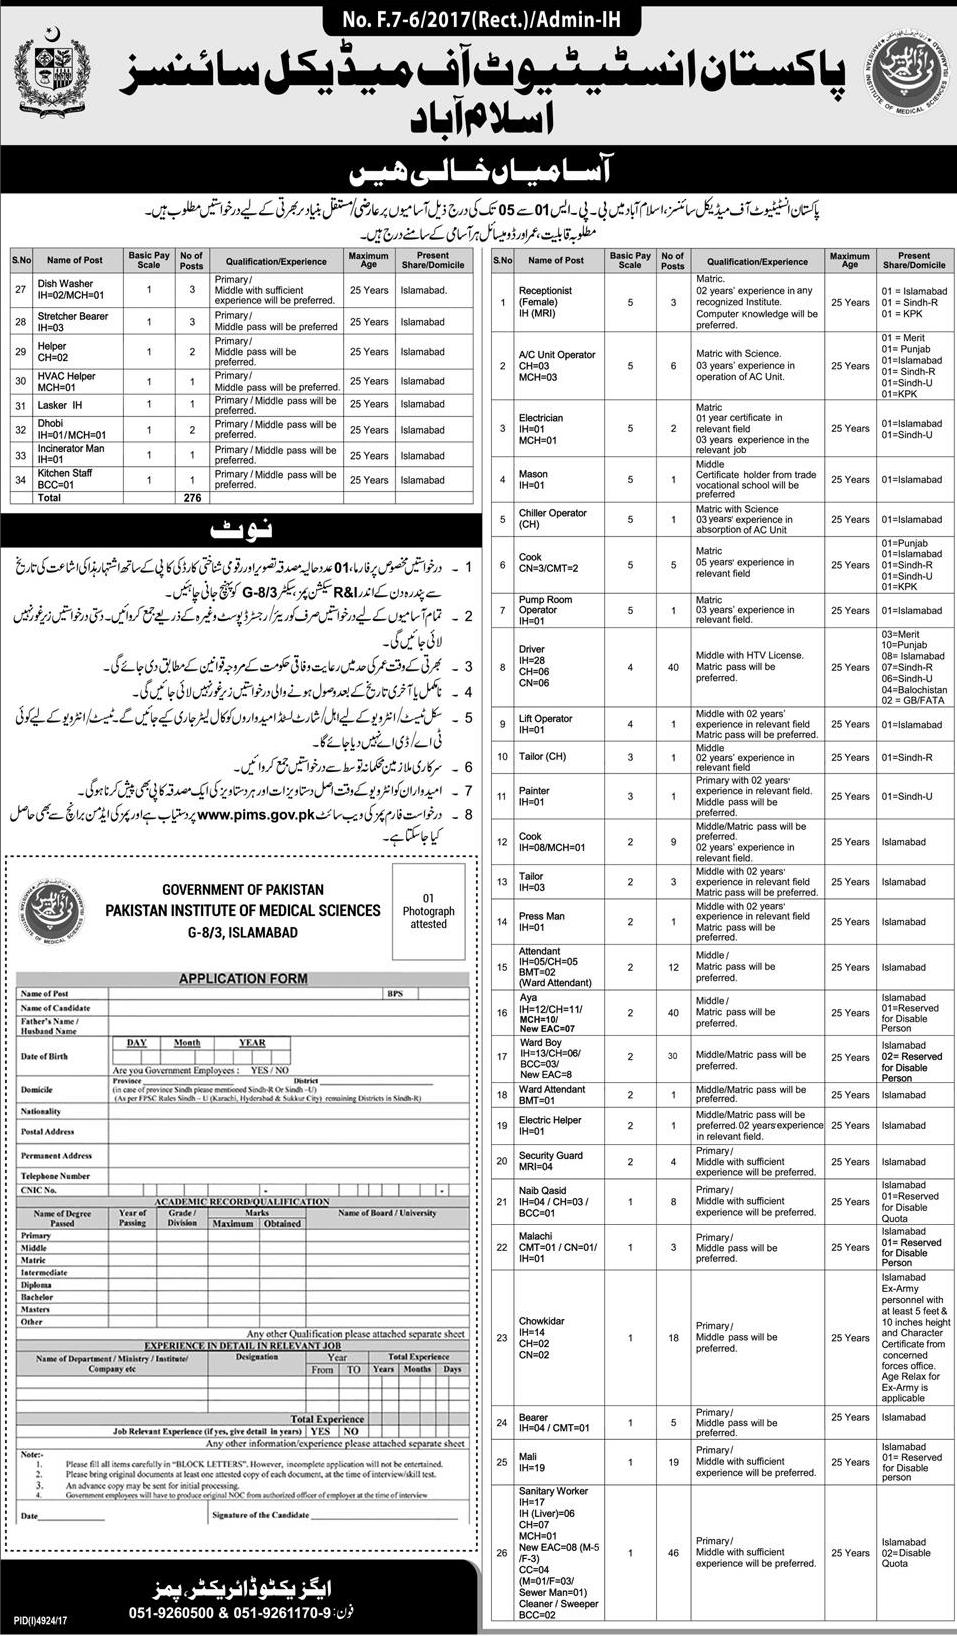 PIMS Jobs Pakistan Institute of Medical Sciences Islamabad Jobs from Scale 01 to Scale 05